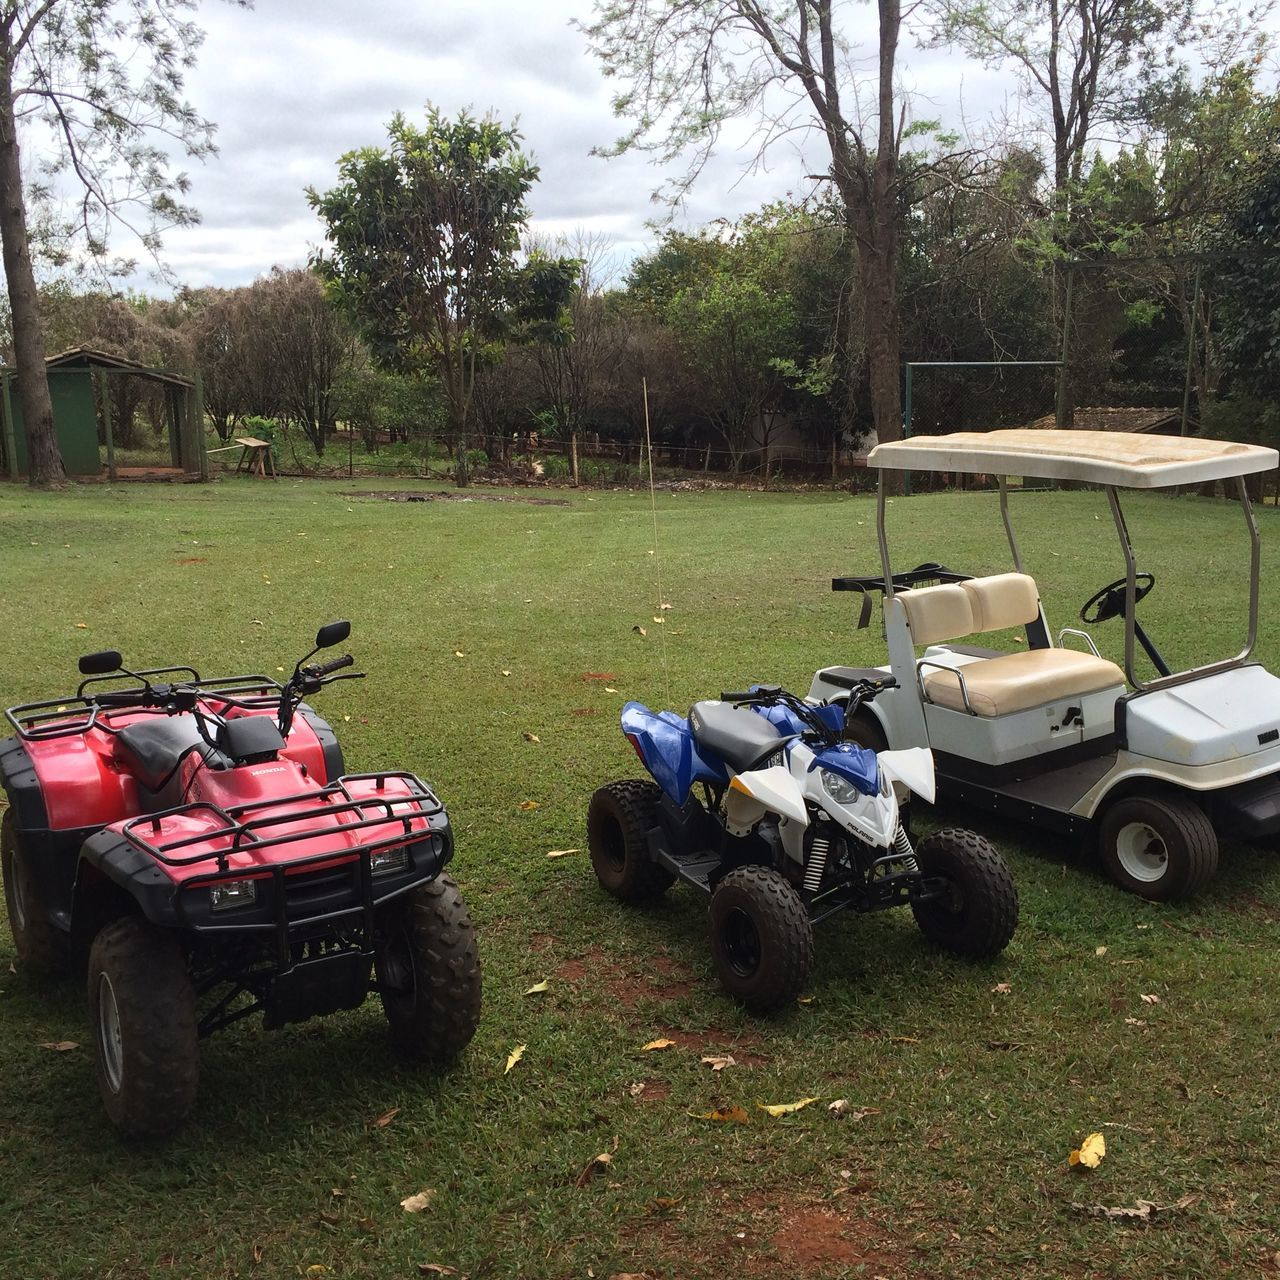 tree, grass, land vehicle, field, transportation, day, mode of transport, outdoors, growth, no people, golf, sky, stationary, nature, golf course